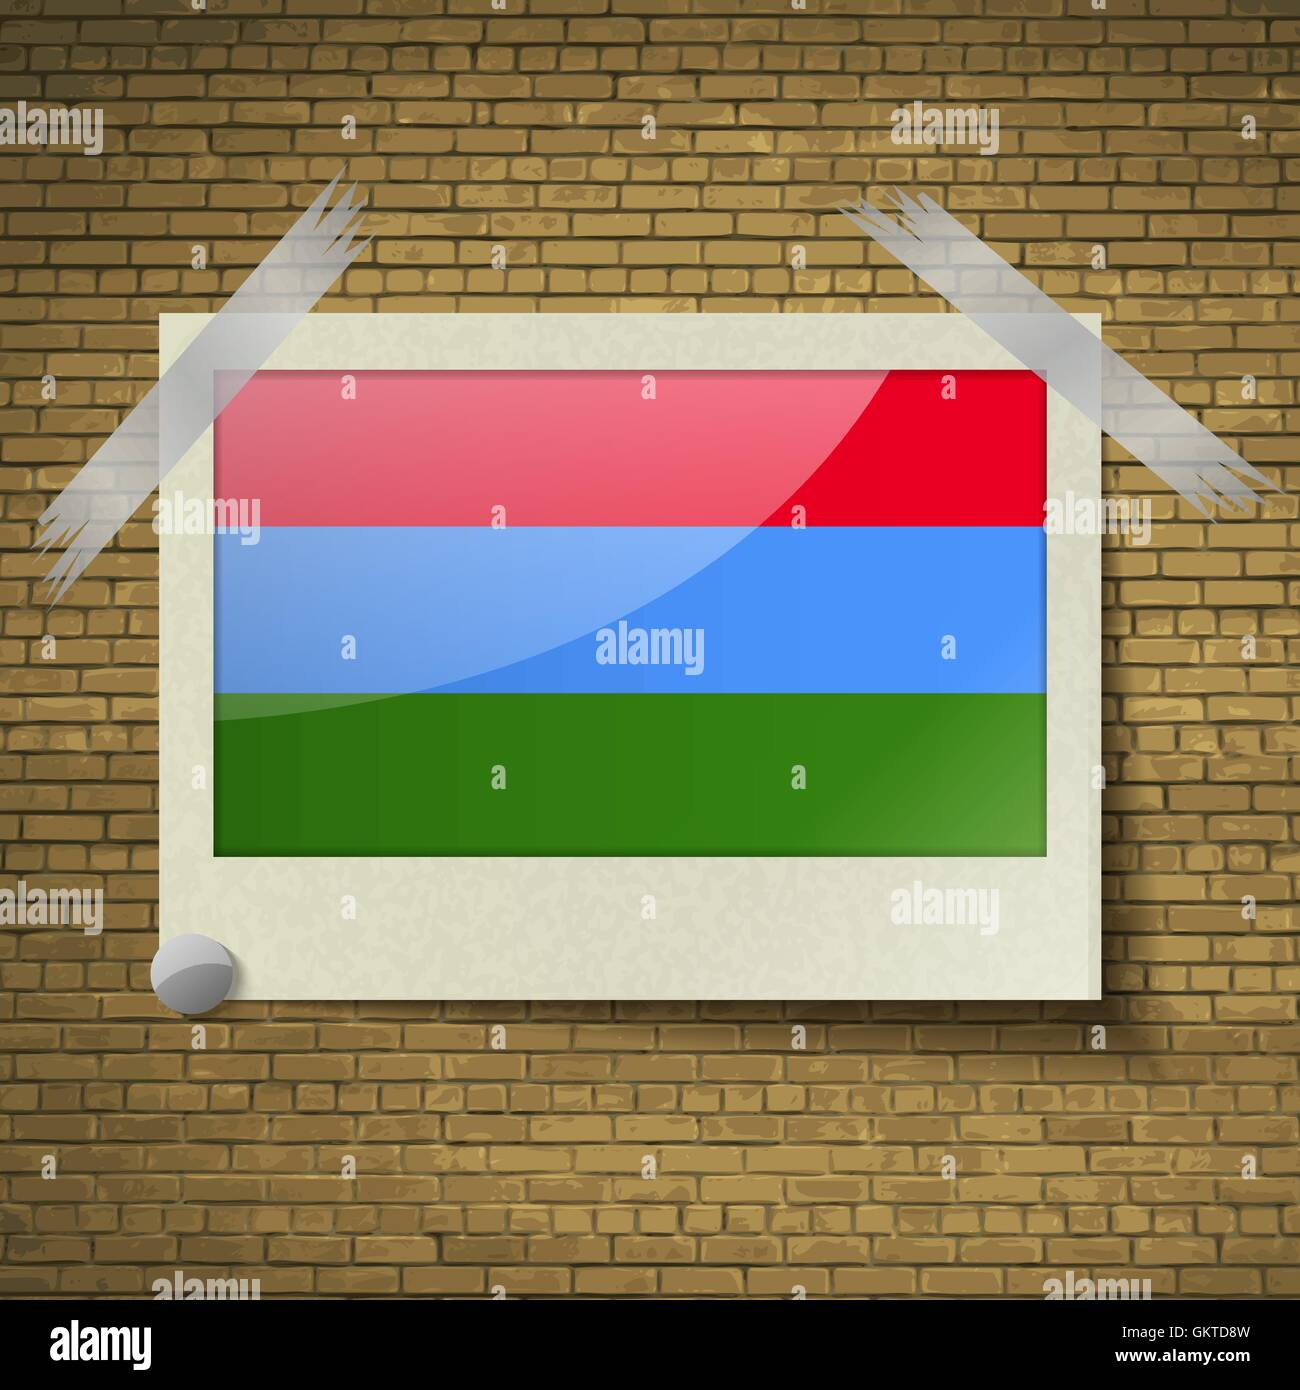 Flags Karelia at frame on a brick background. Vector - Stock Image